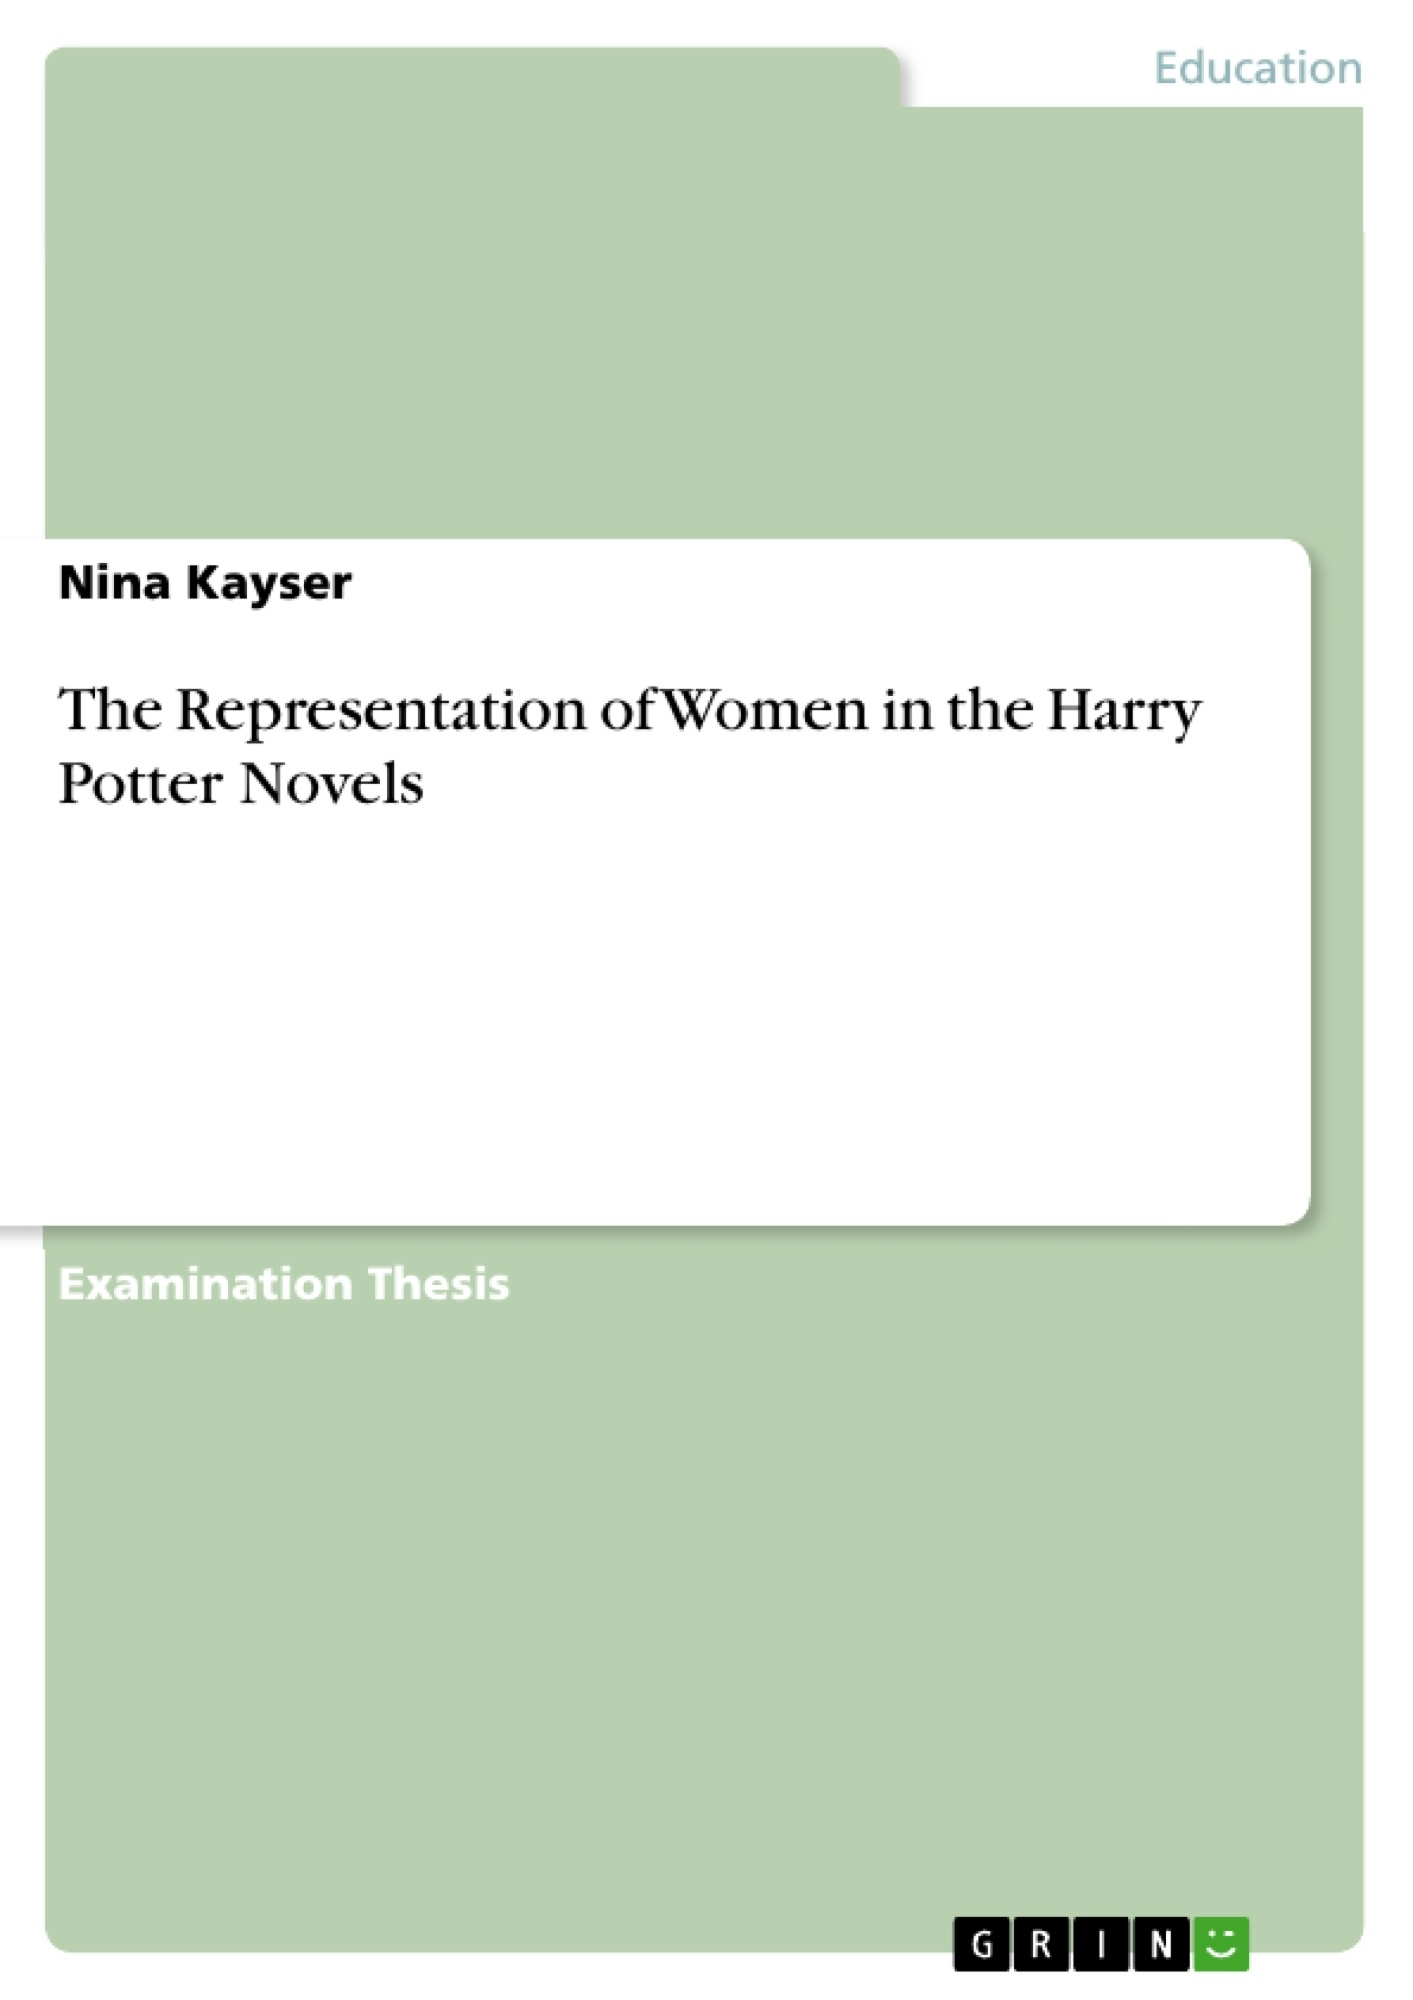 Do you think writing an exemplification (research) essay over the Harry Potter phenomenon is a good topic?